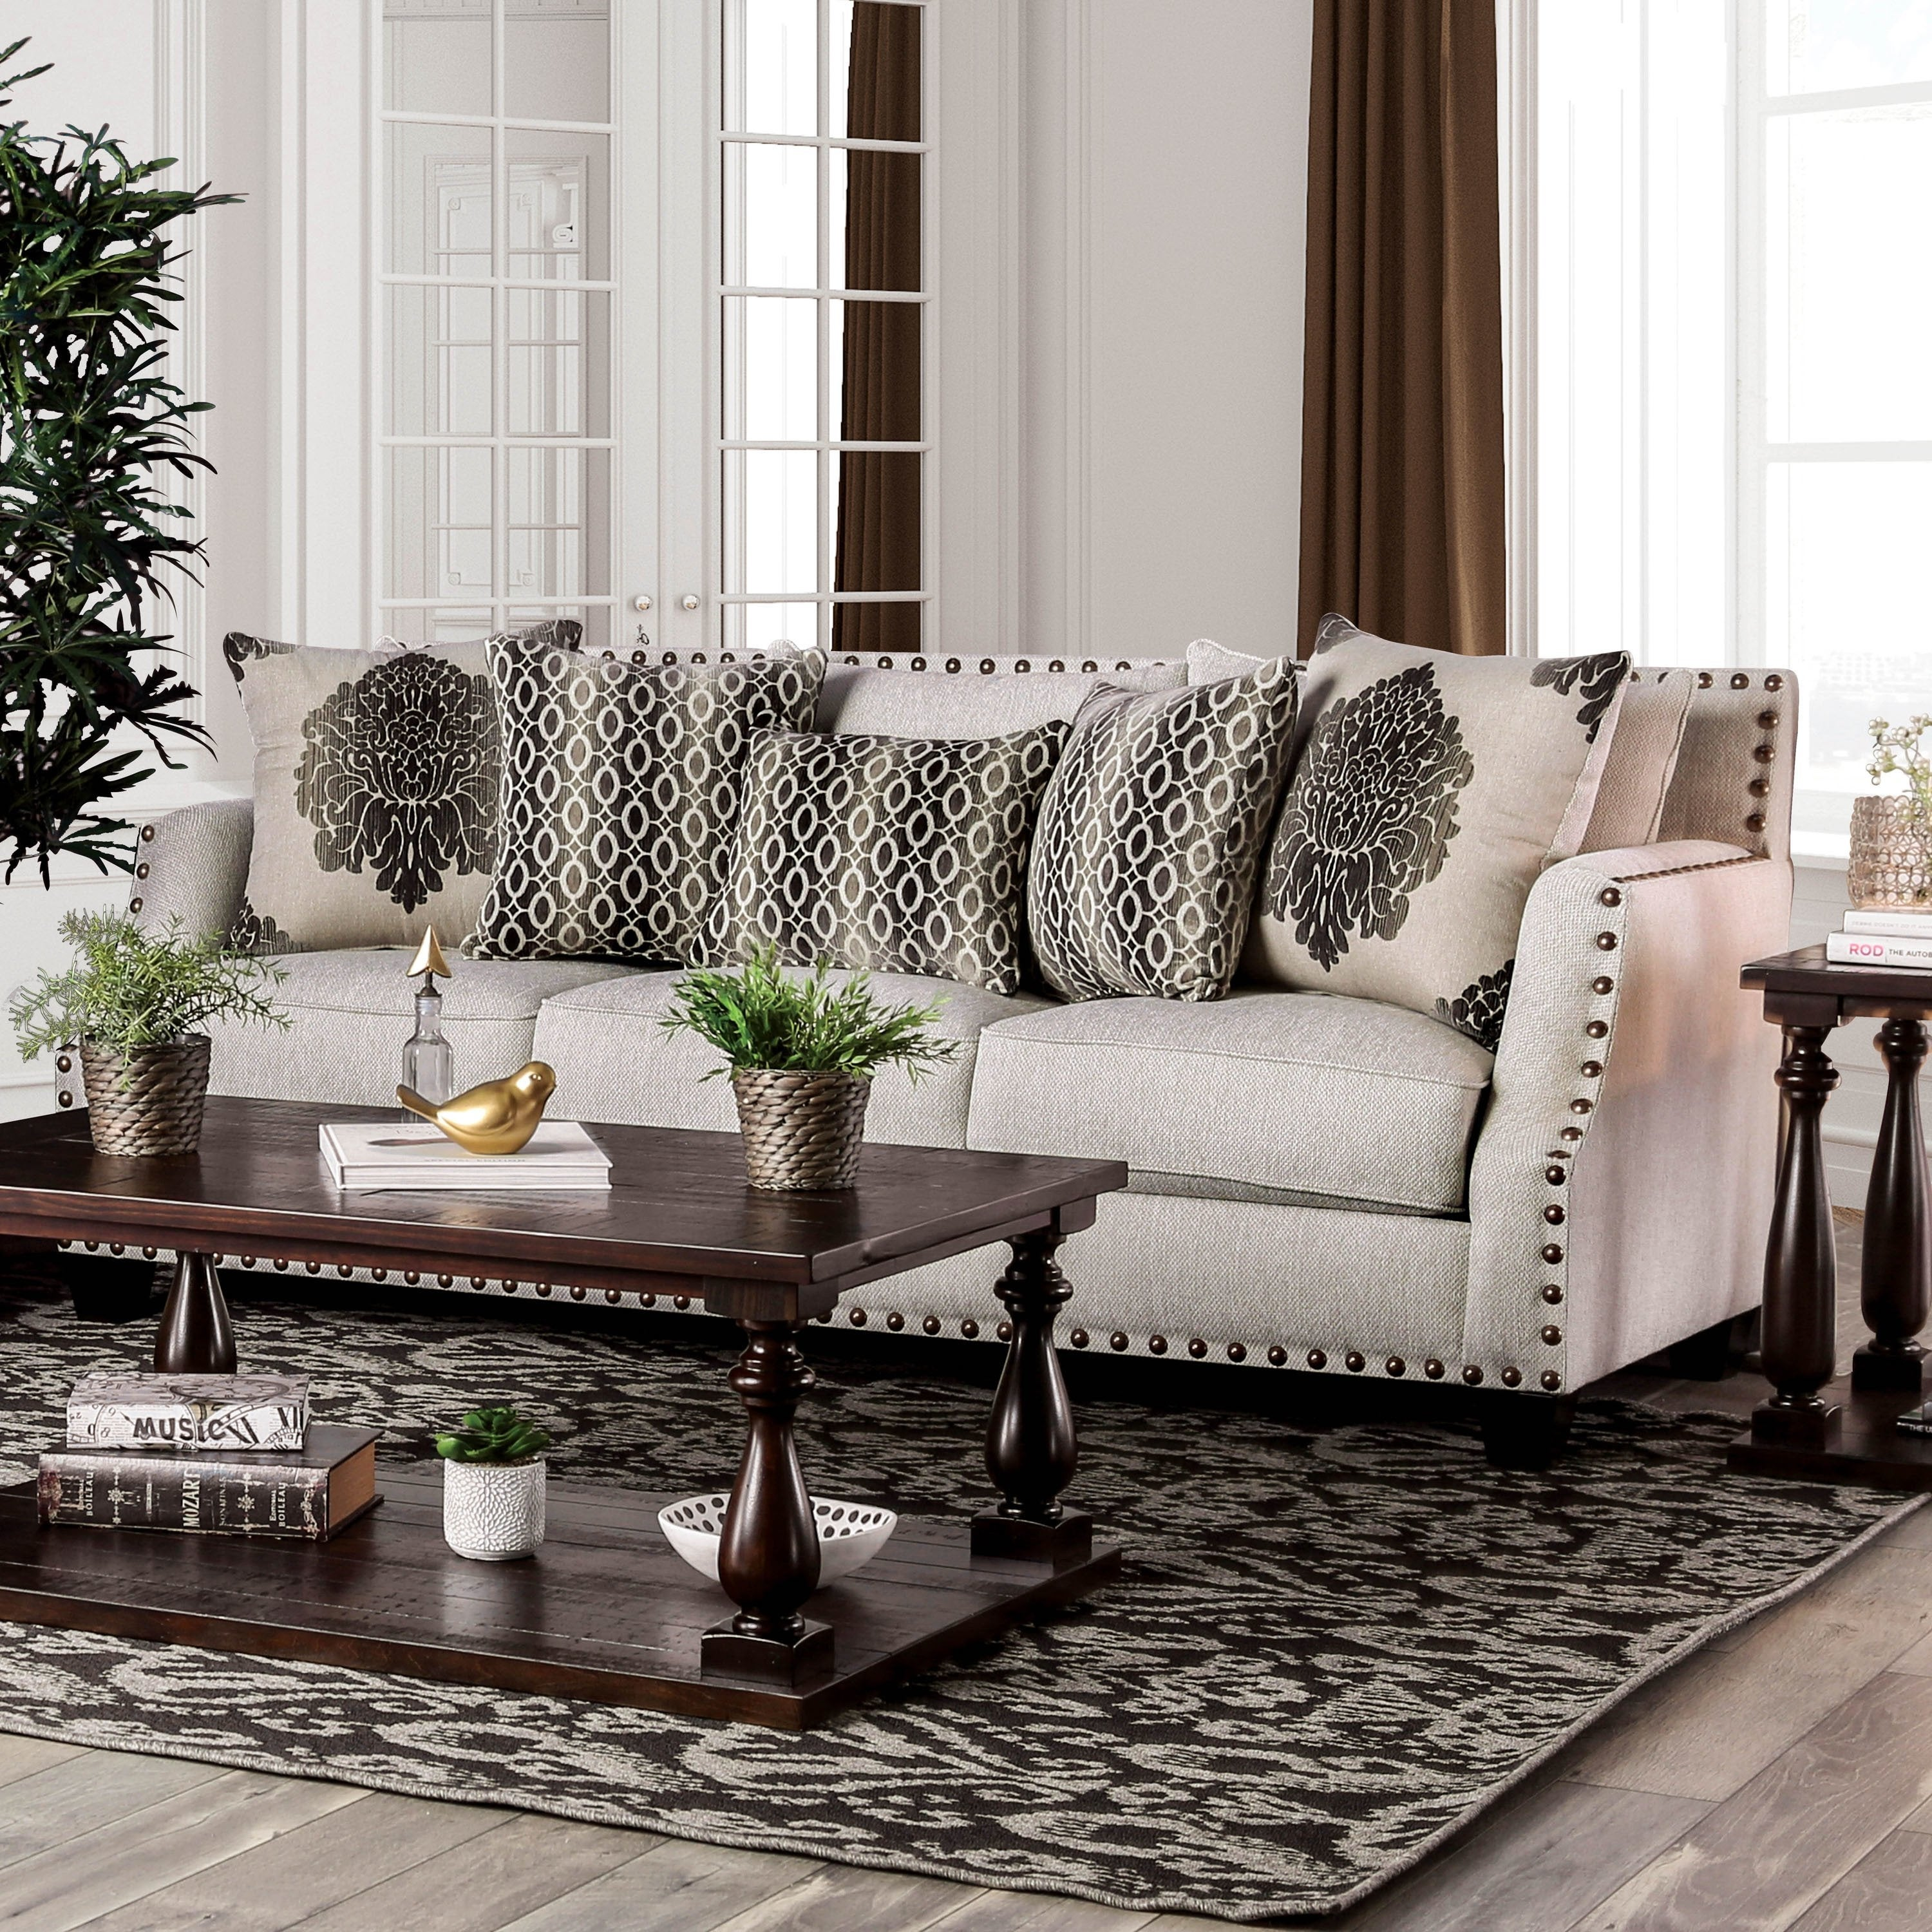 Furniture Of America Zack Contemporary Chenille Upholstered Sofa On Sale Overstock 20301829